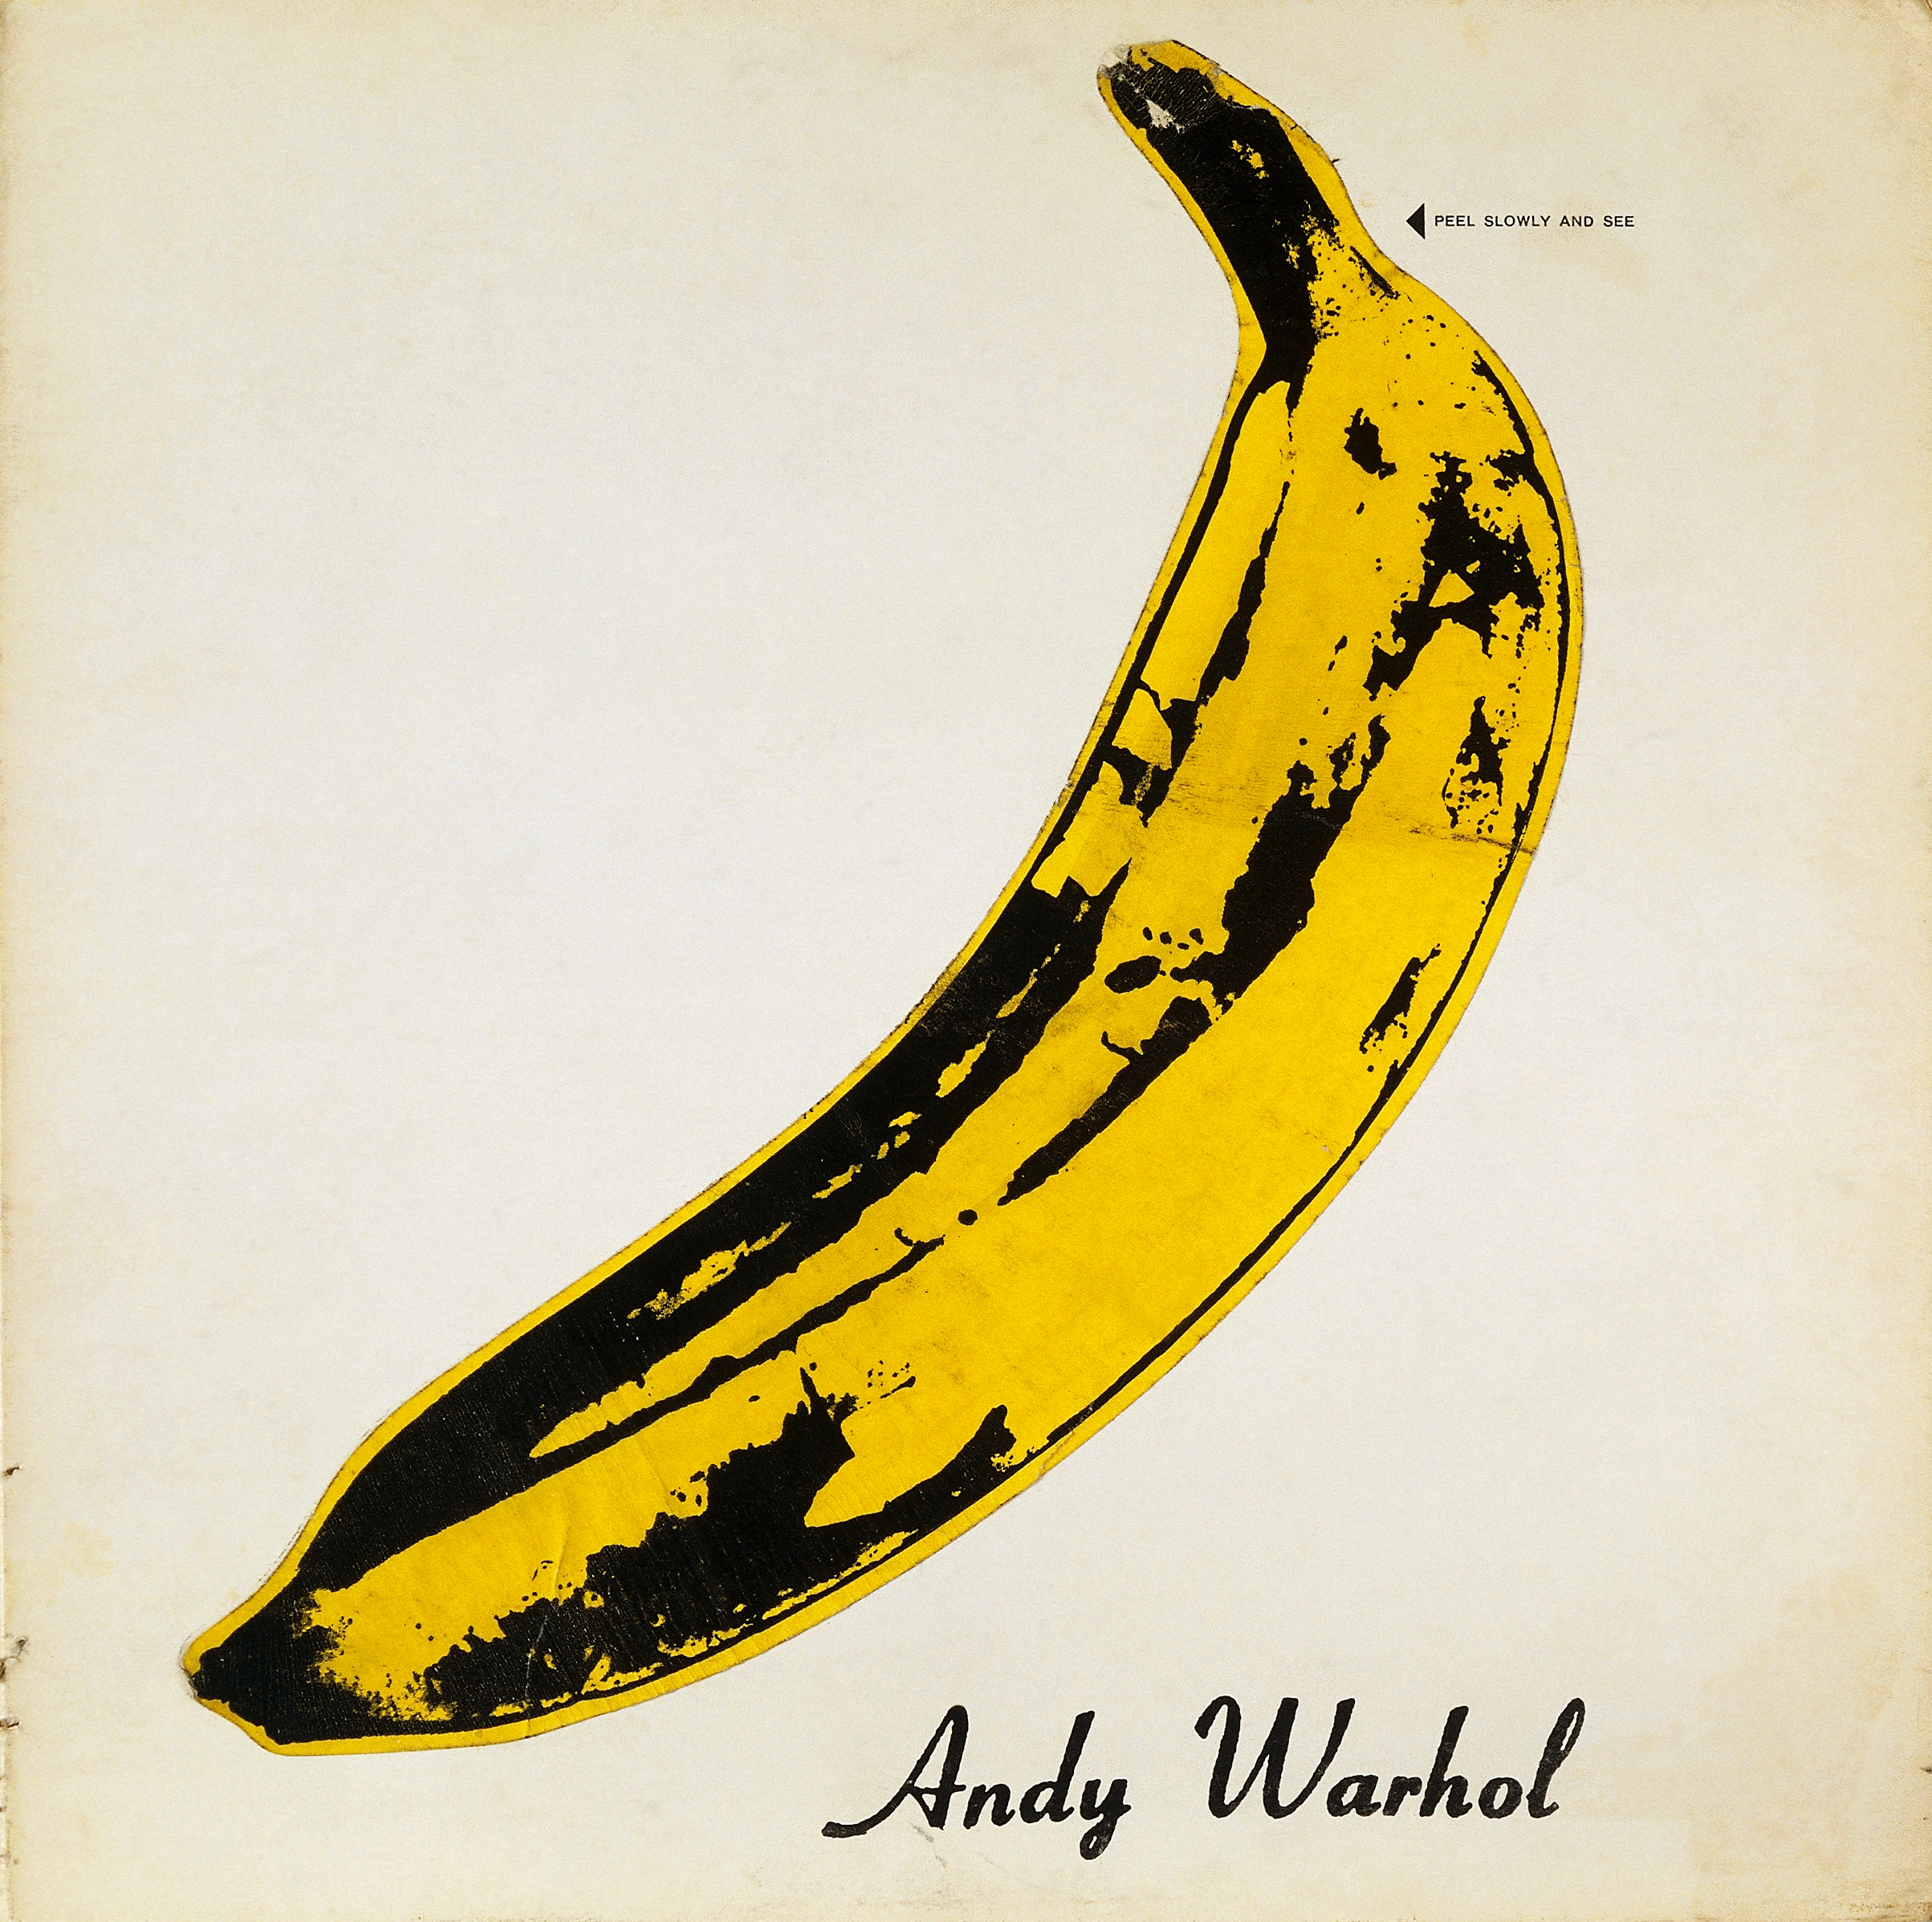 Album cover of The Velvet Underground and Nico croped